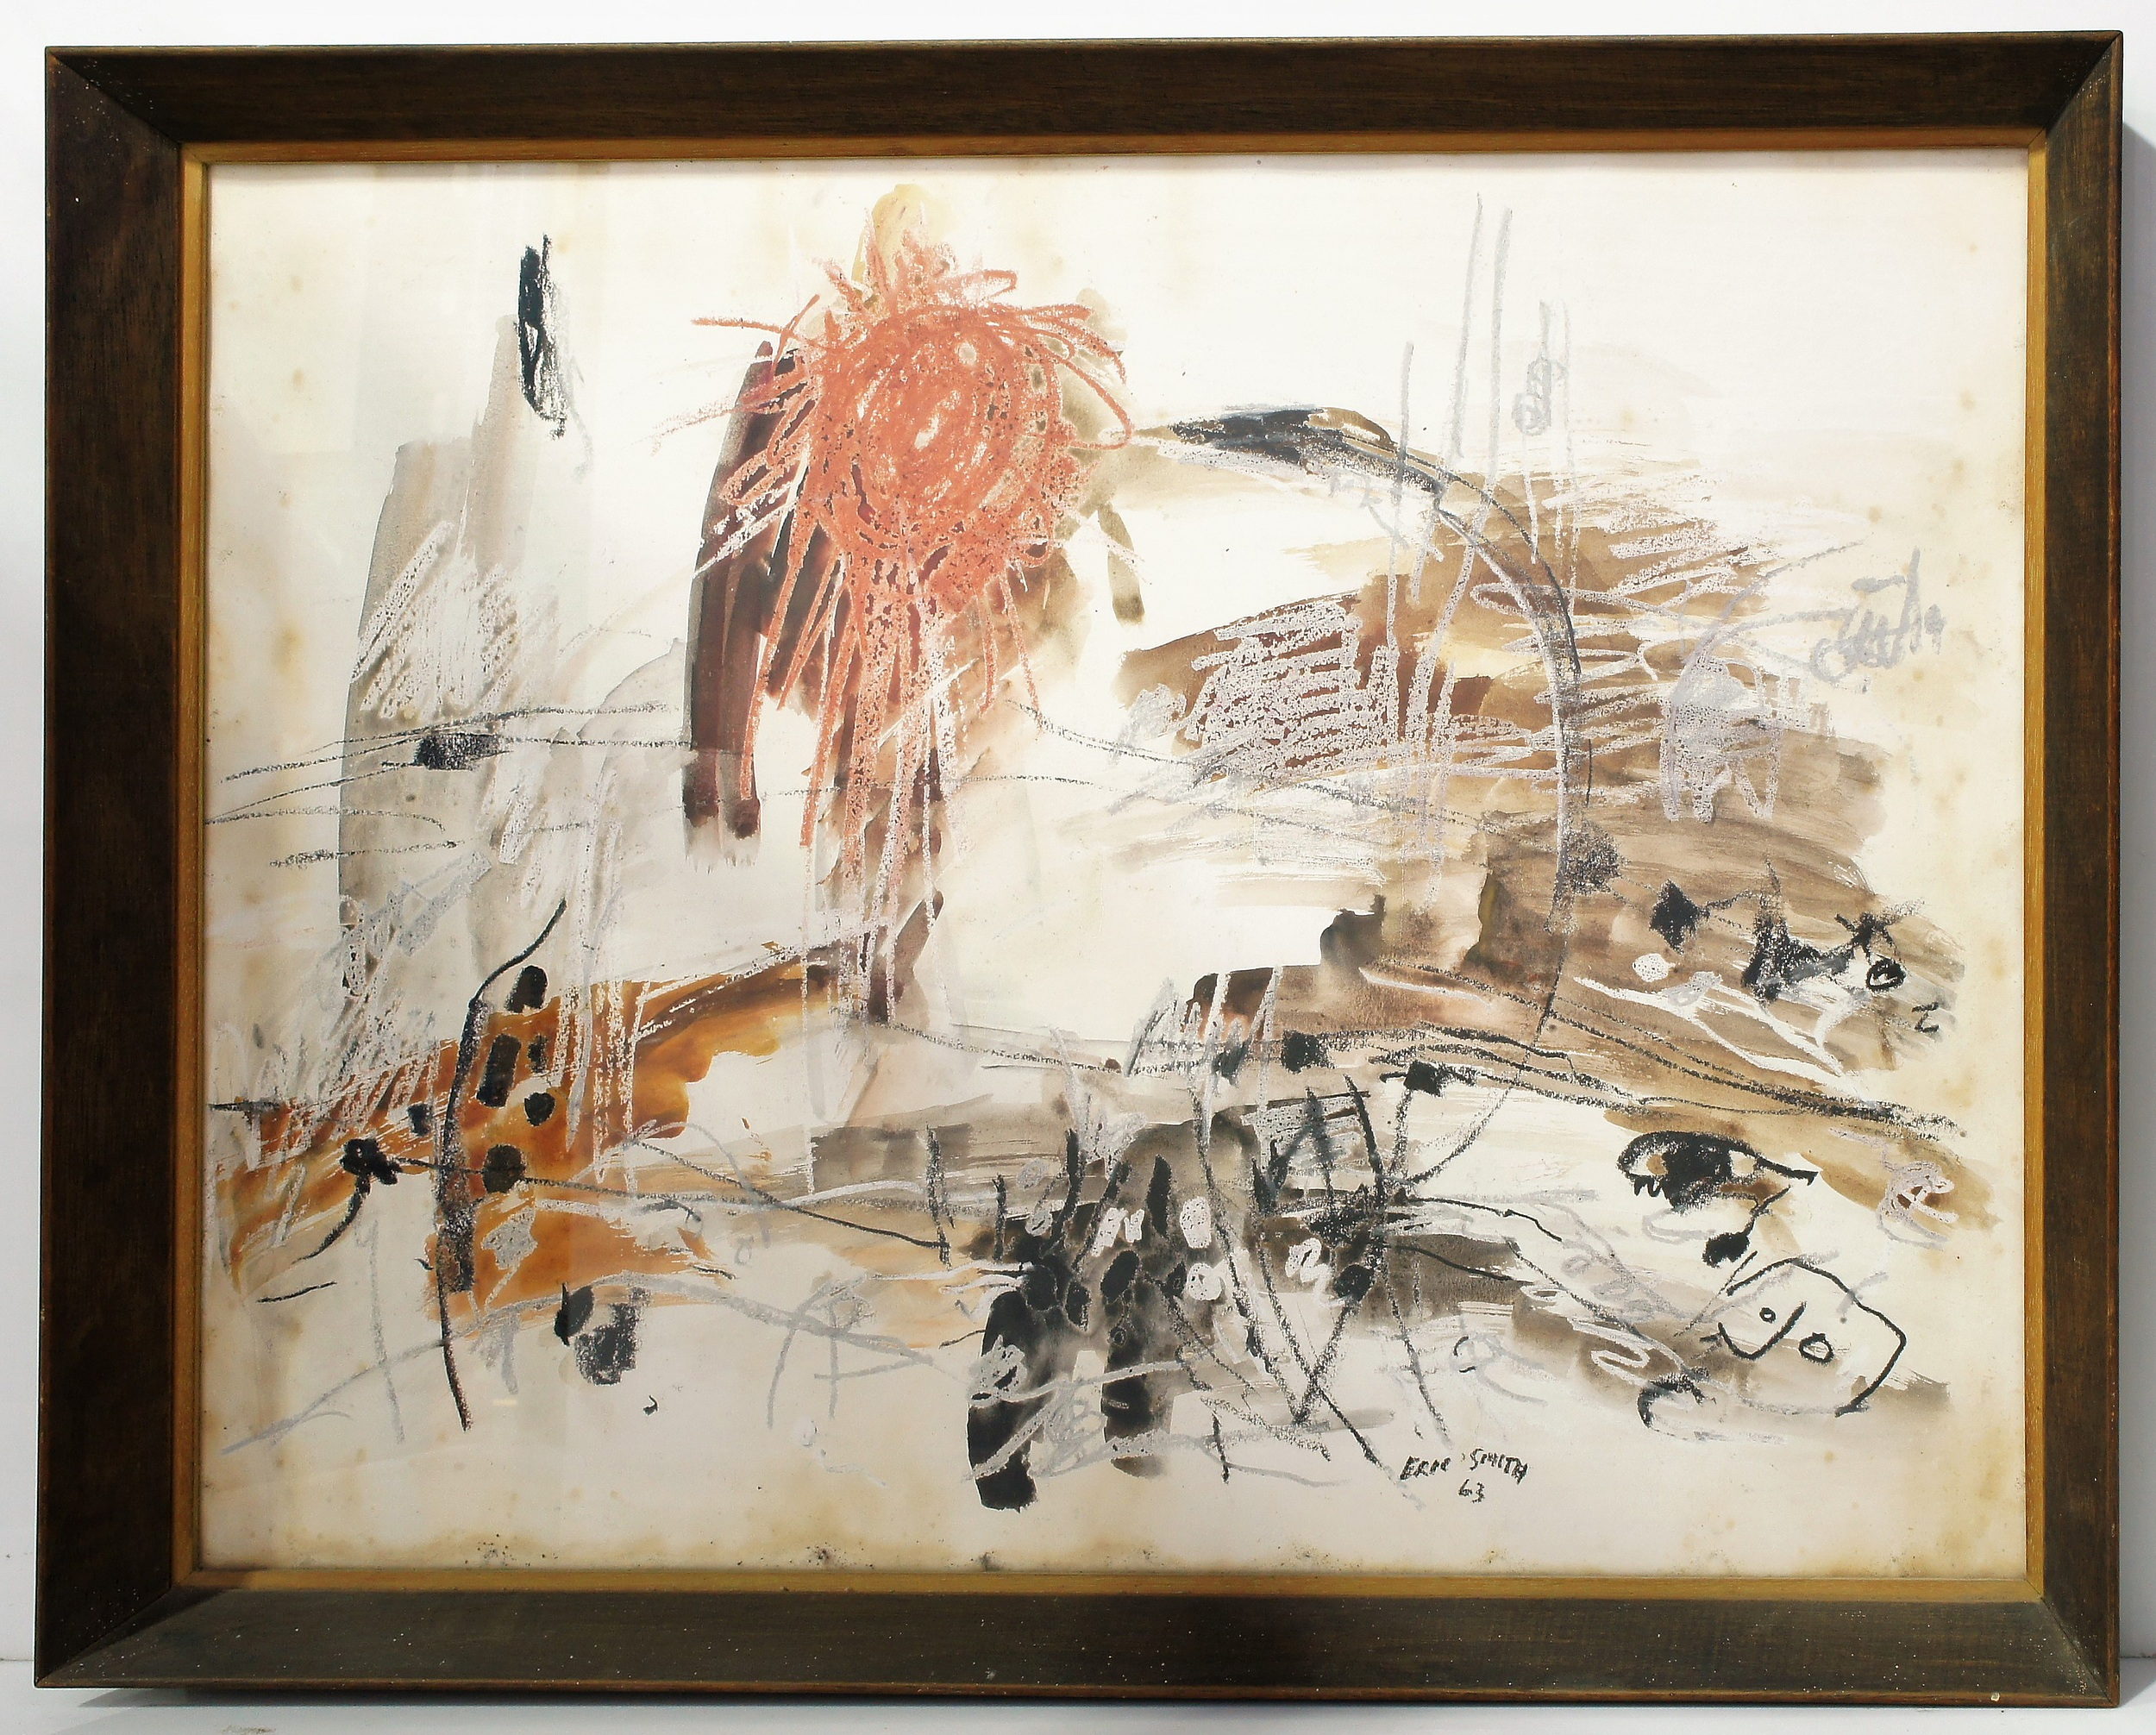 'Eric Smith (1919-2017) Untitled Mixed Media on Paper'